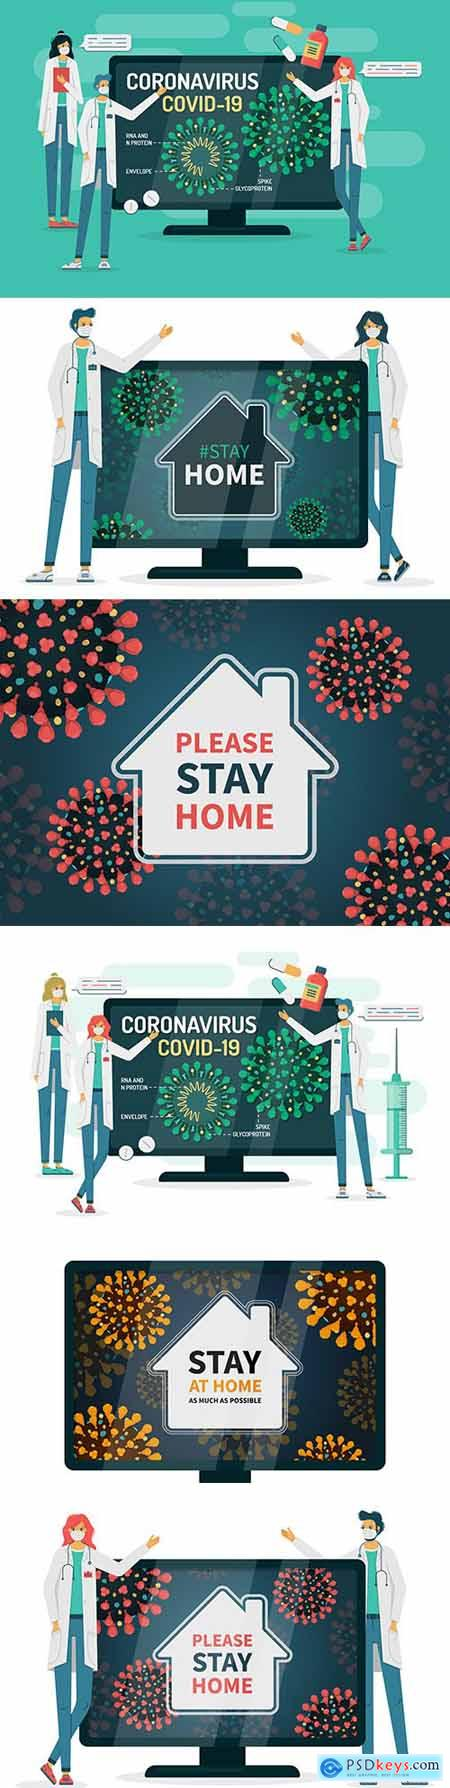 Doctors ask to stay at home due to coronavirus infection